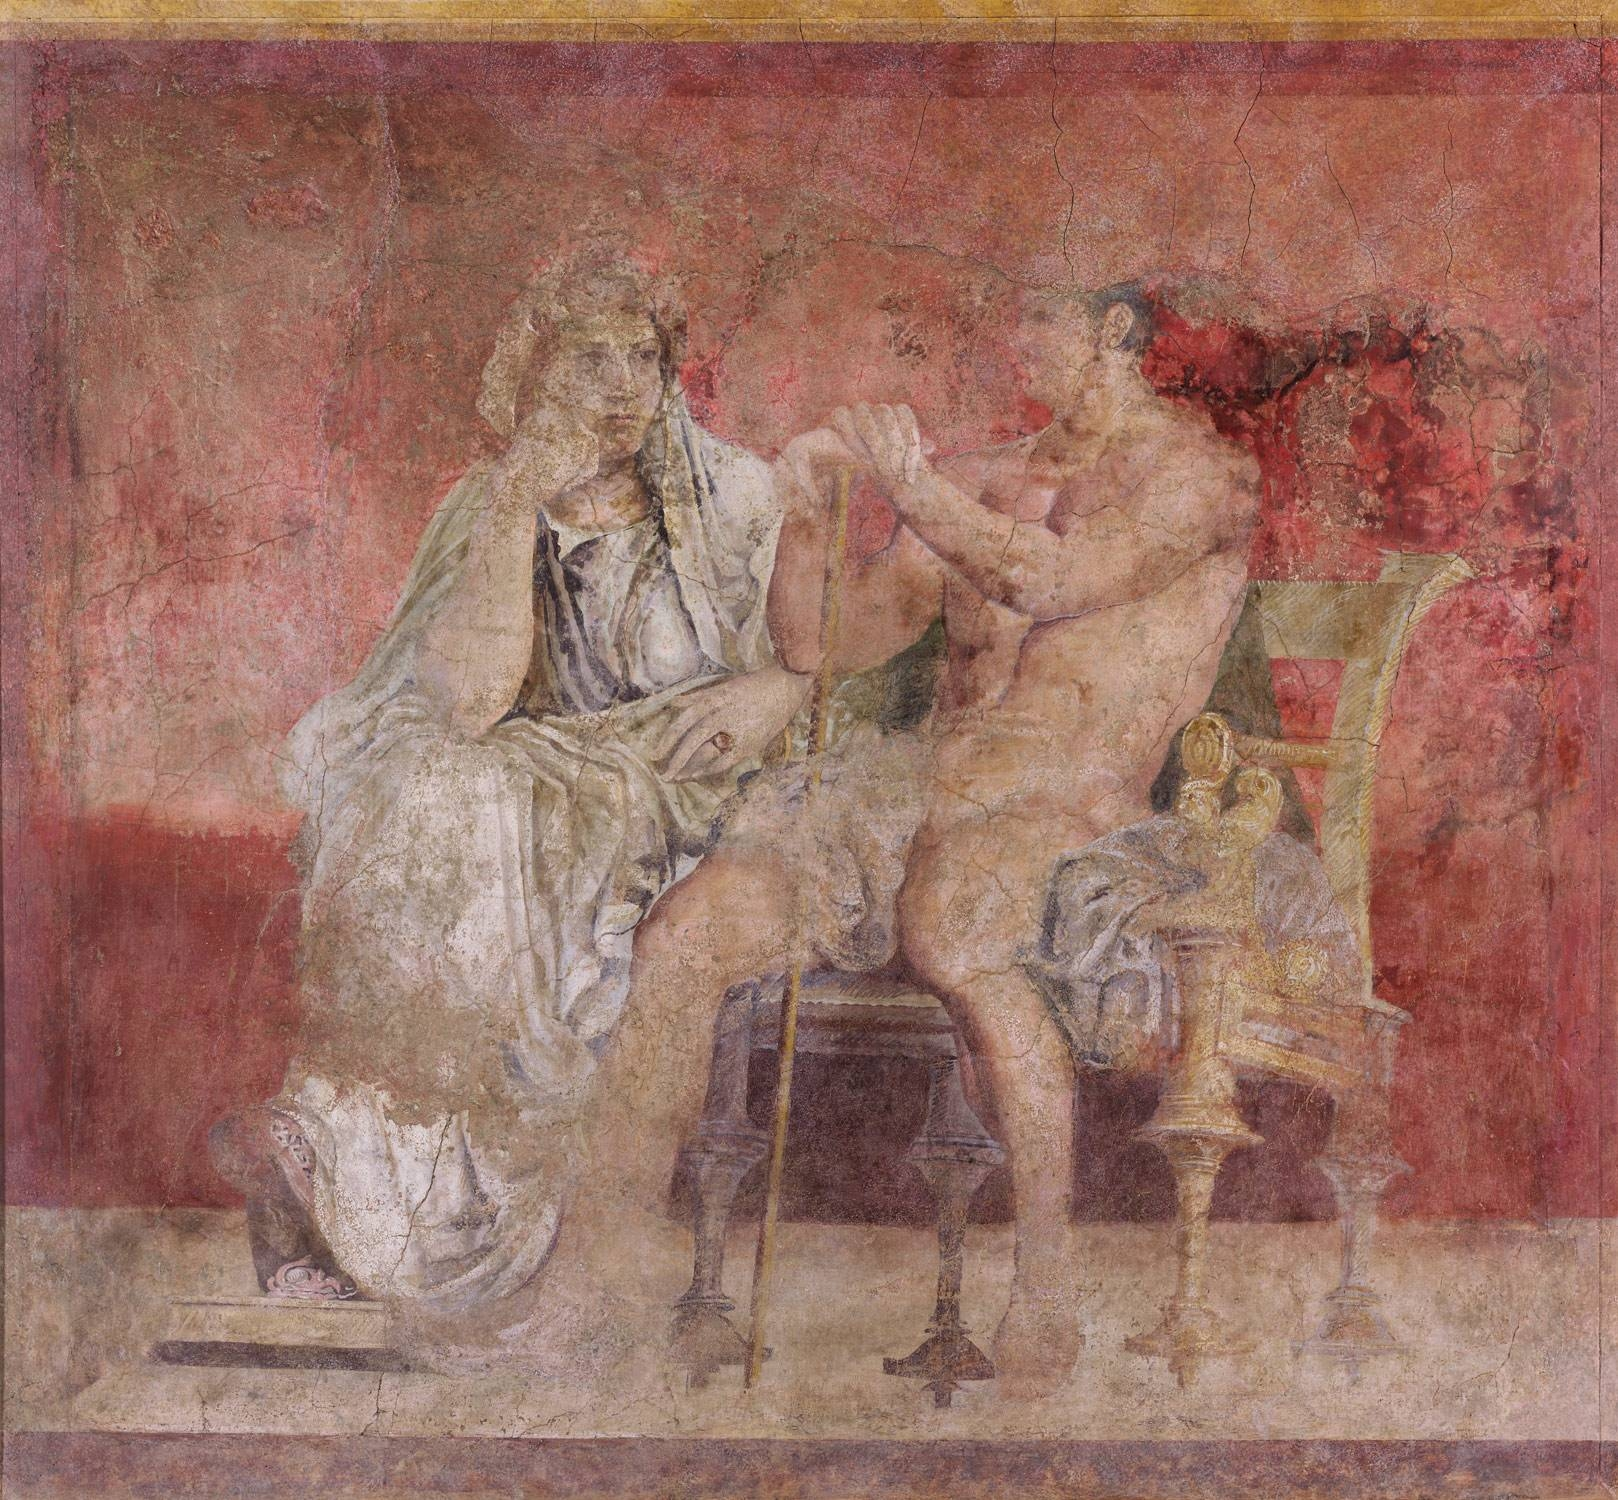 Wall Painting From Room H Of The Villa Of P (View 20 of 20)